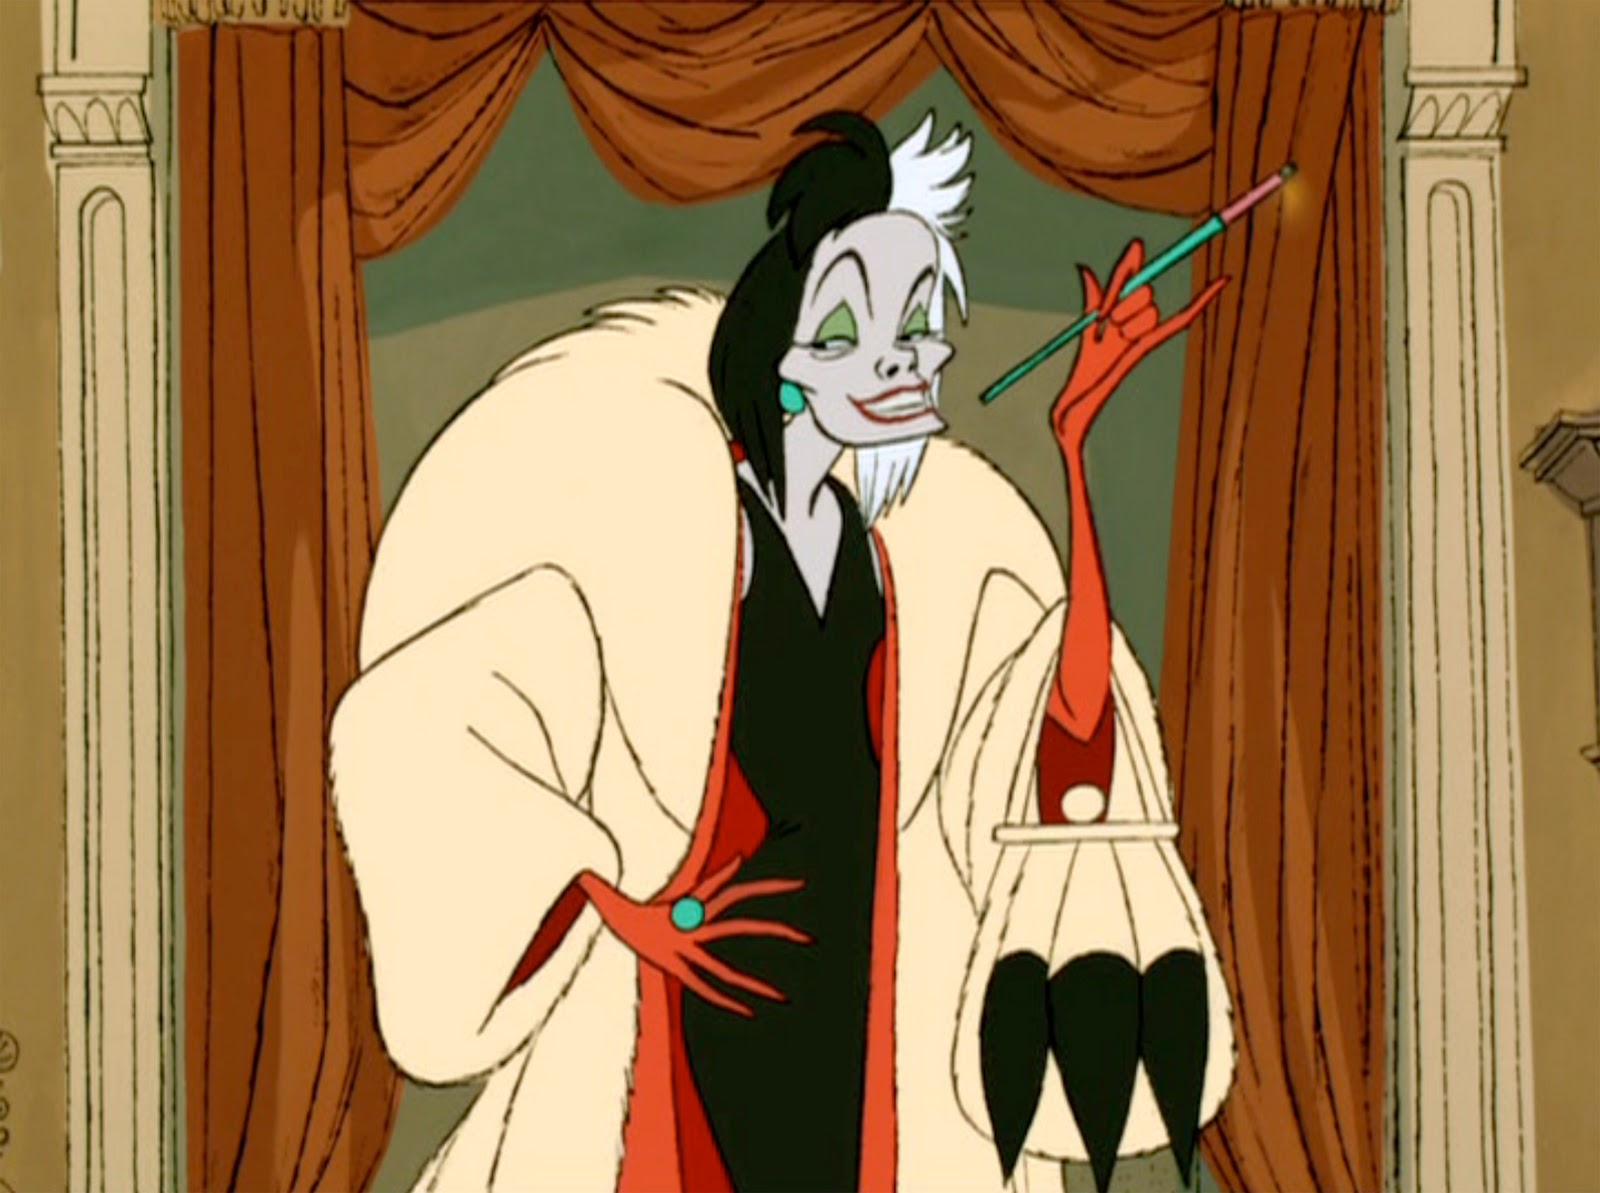 101-dalmatians-cruella-de-vil-cartoon-5614